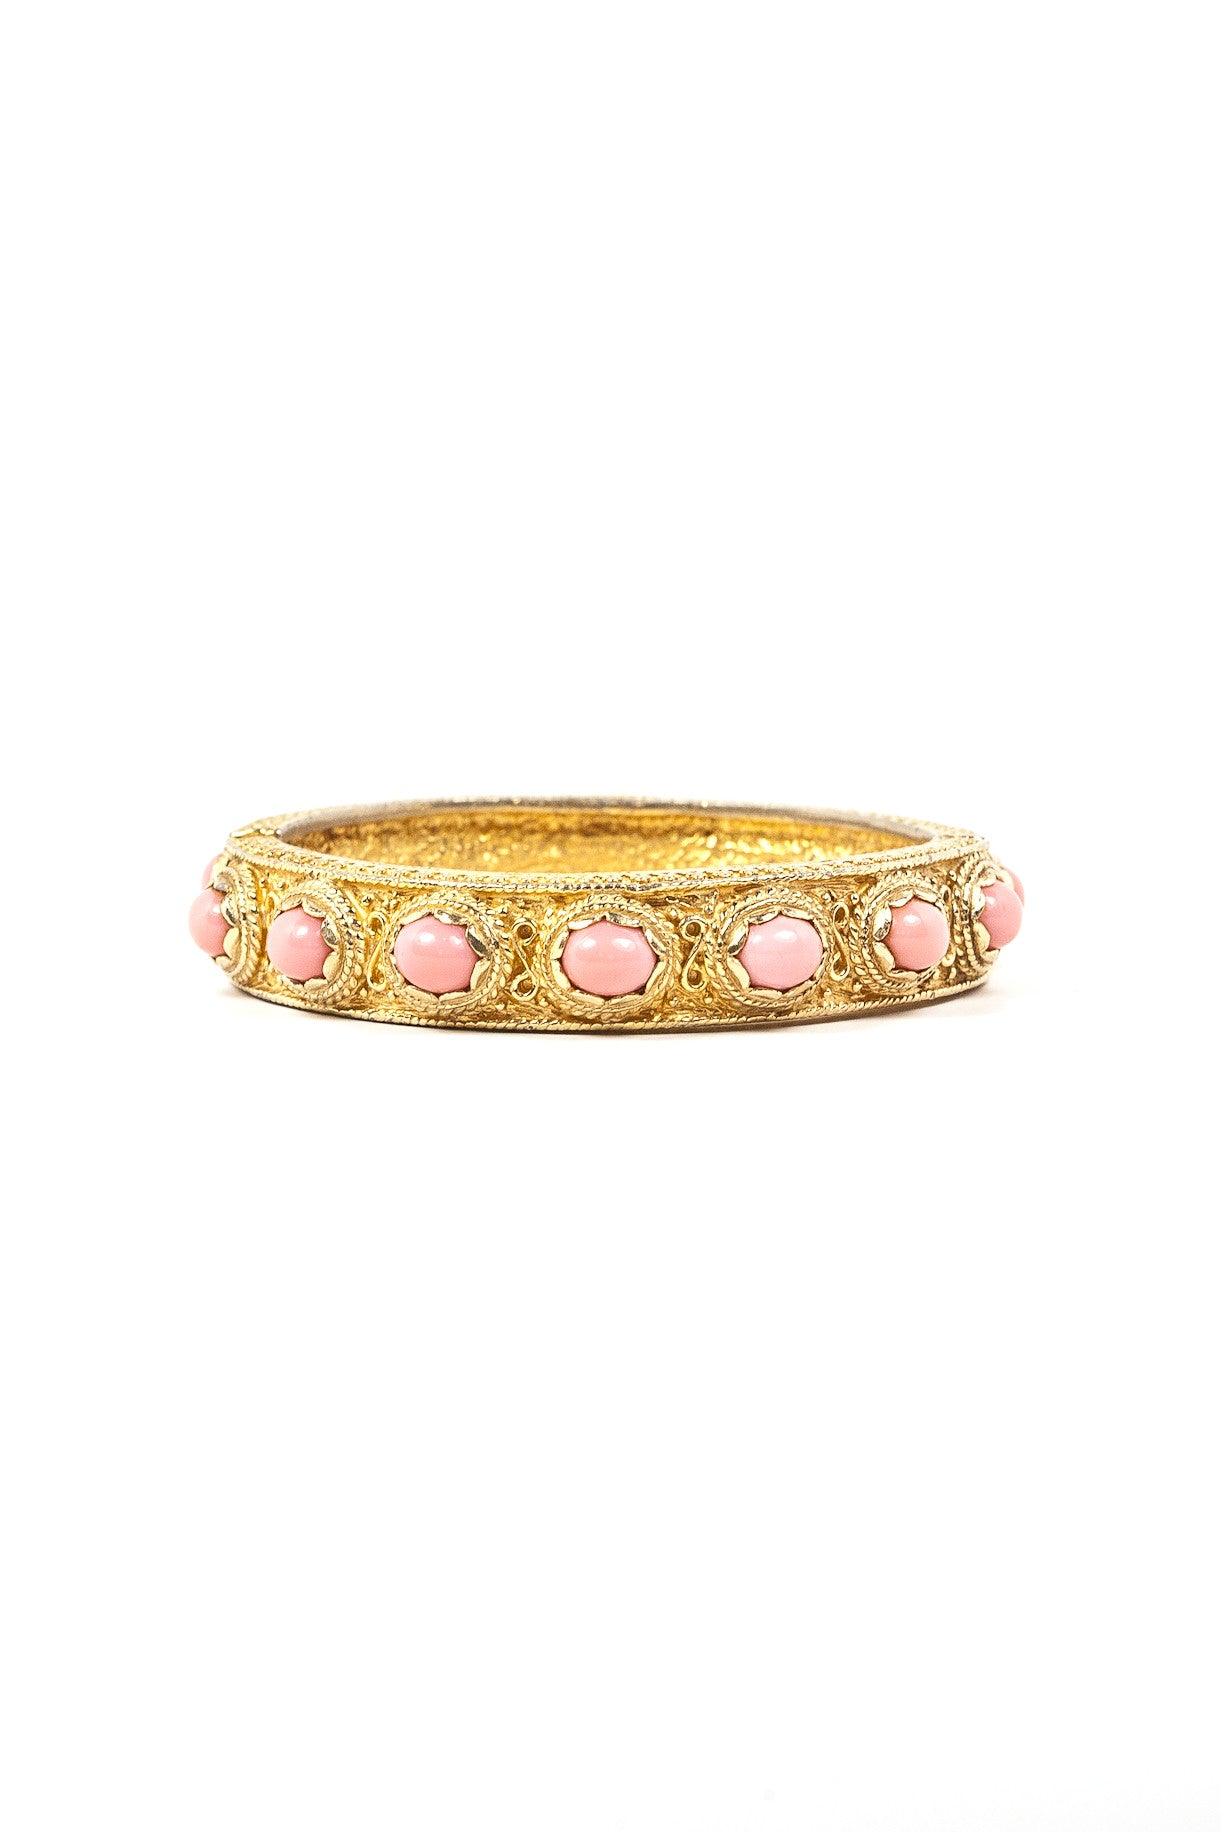 70's__Castlecliff__Pink Bangle